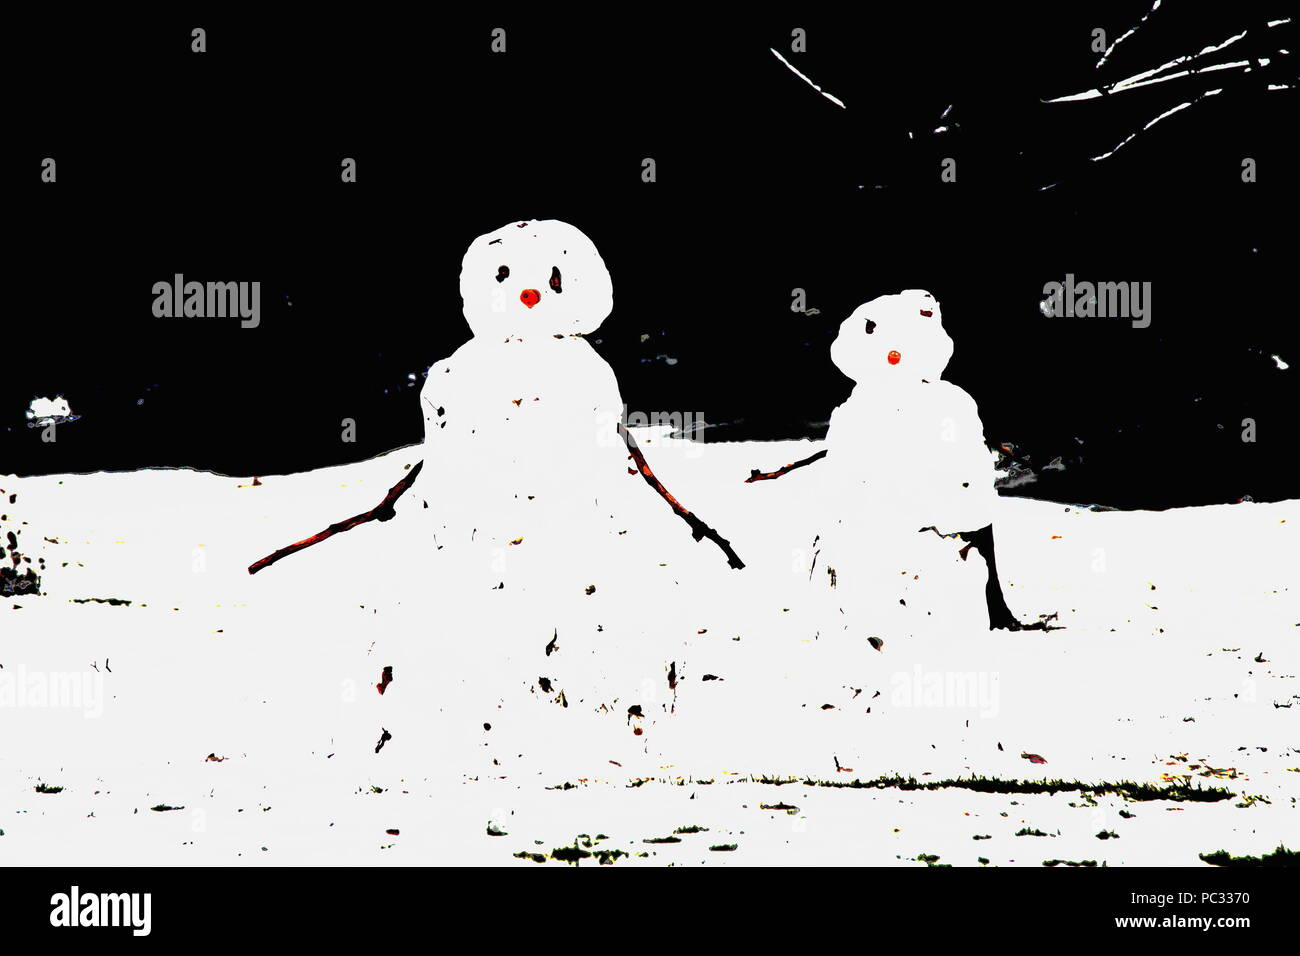 A modern seasonal abstract scene with cute snowmen.Snowman Snow Christmas card. Snow people . Snowman and snow woman. Black background. Red nose. Seasons greetings. Artwork for cards. Twigs for arms. Snow couple. Photo credit Russell Moore. - Stock Image